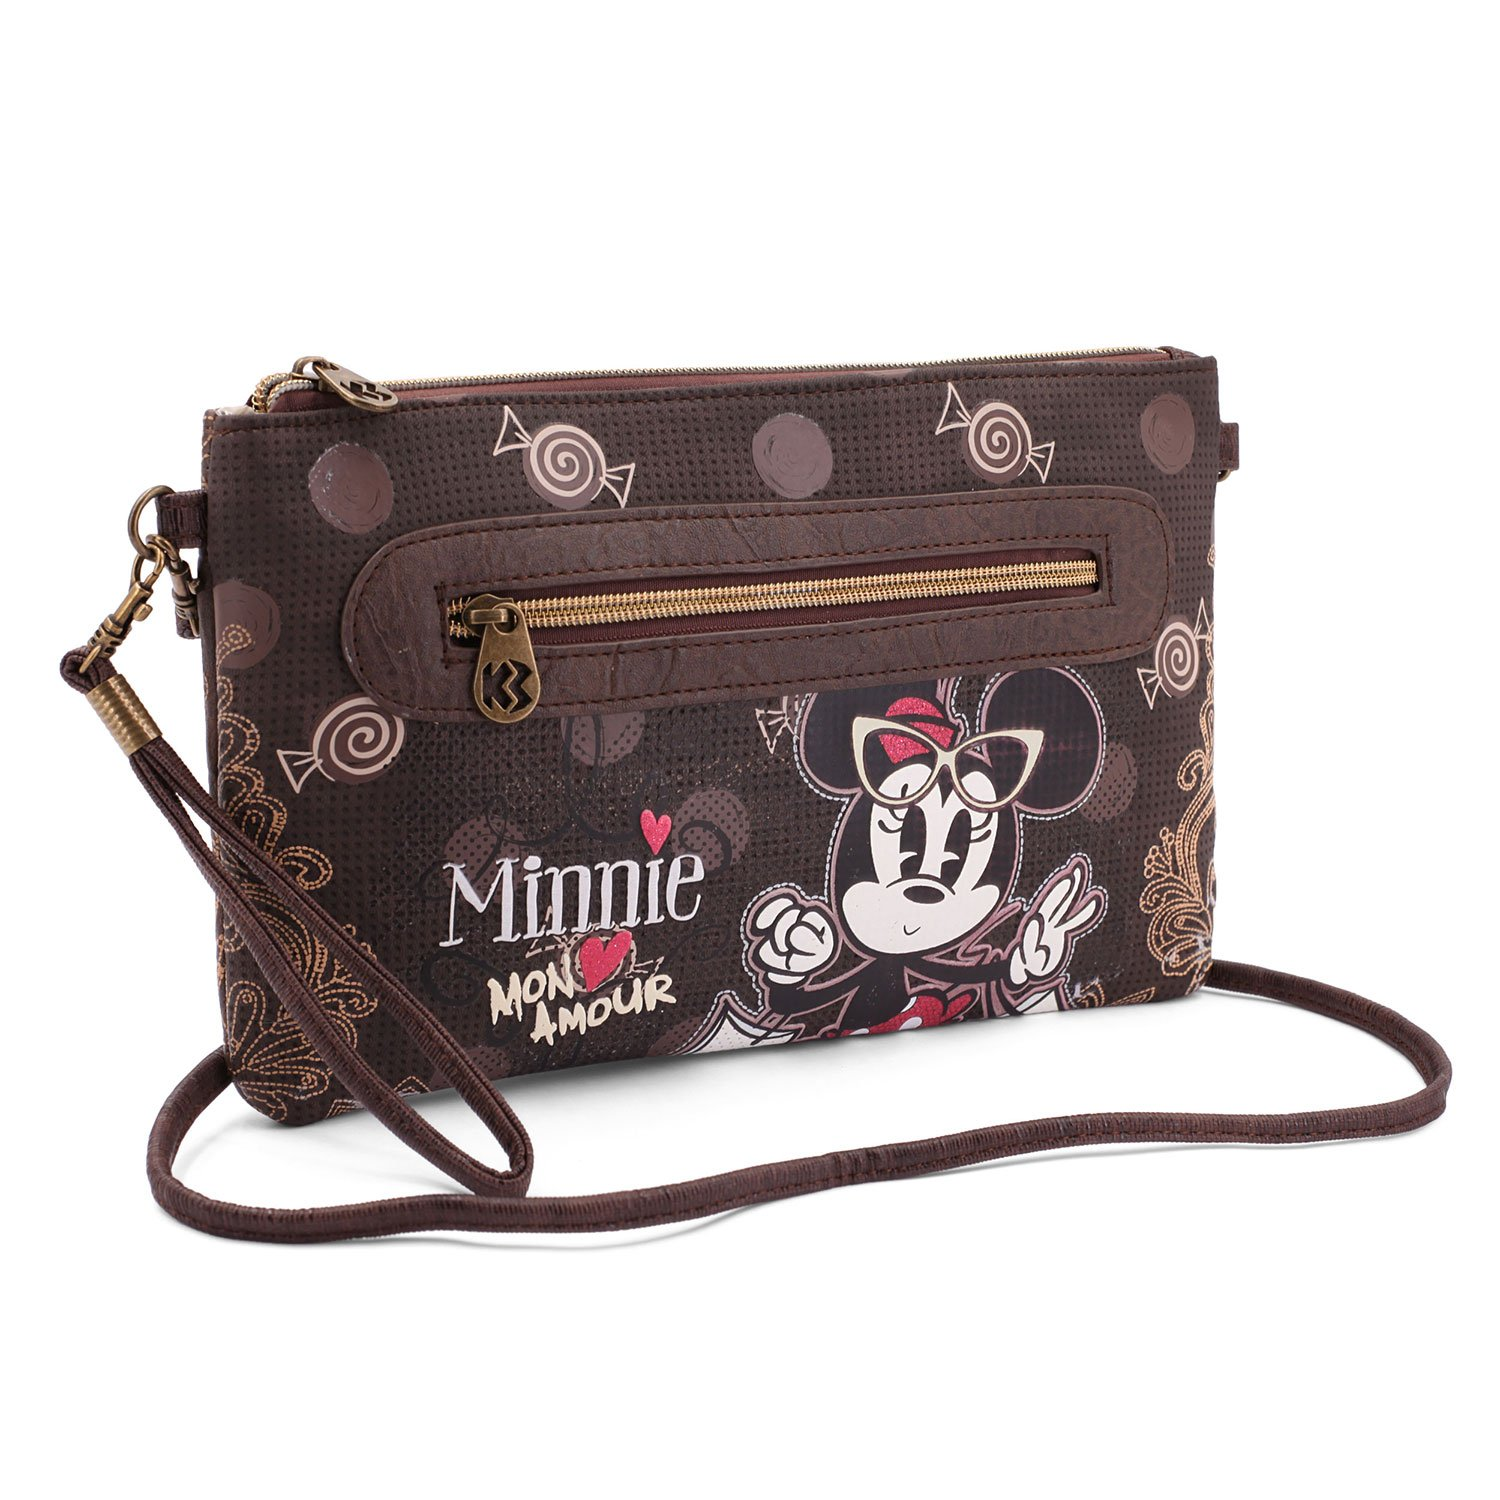 Karactermania Minnie Mouse Mon Amour-Action Handy Shoulder Bag Sac bandouliè re, 28 cm, Marron (Brown) 36598